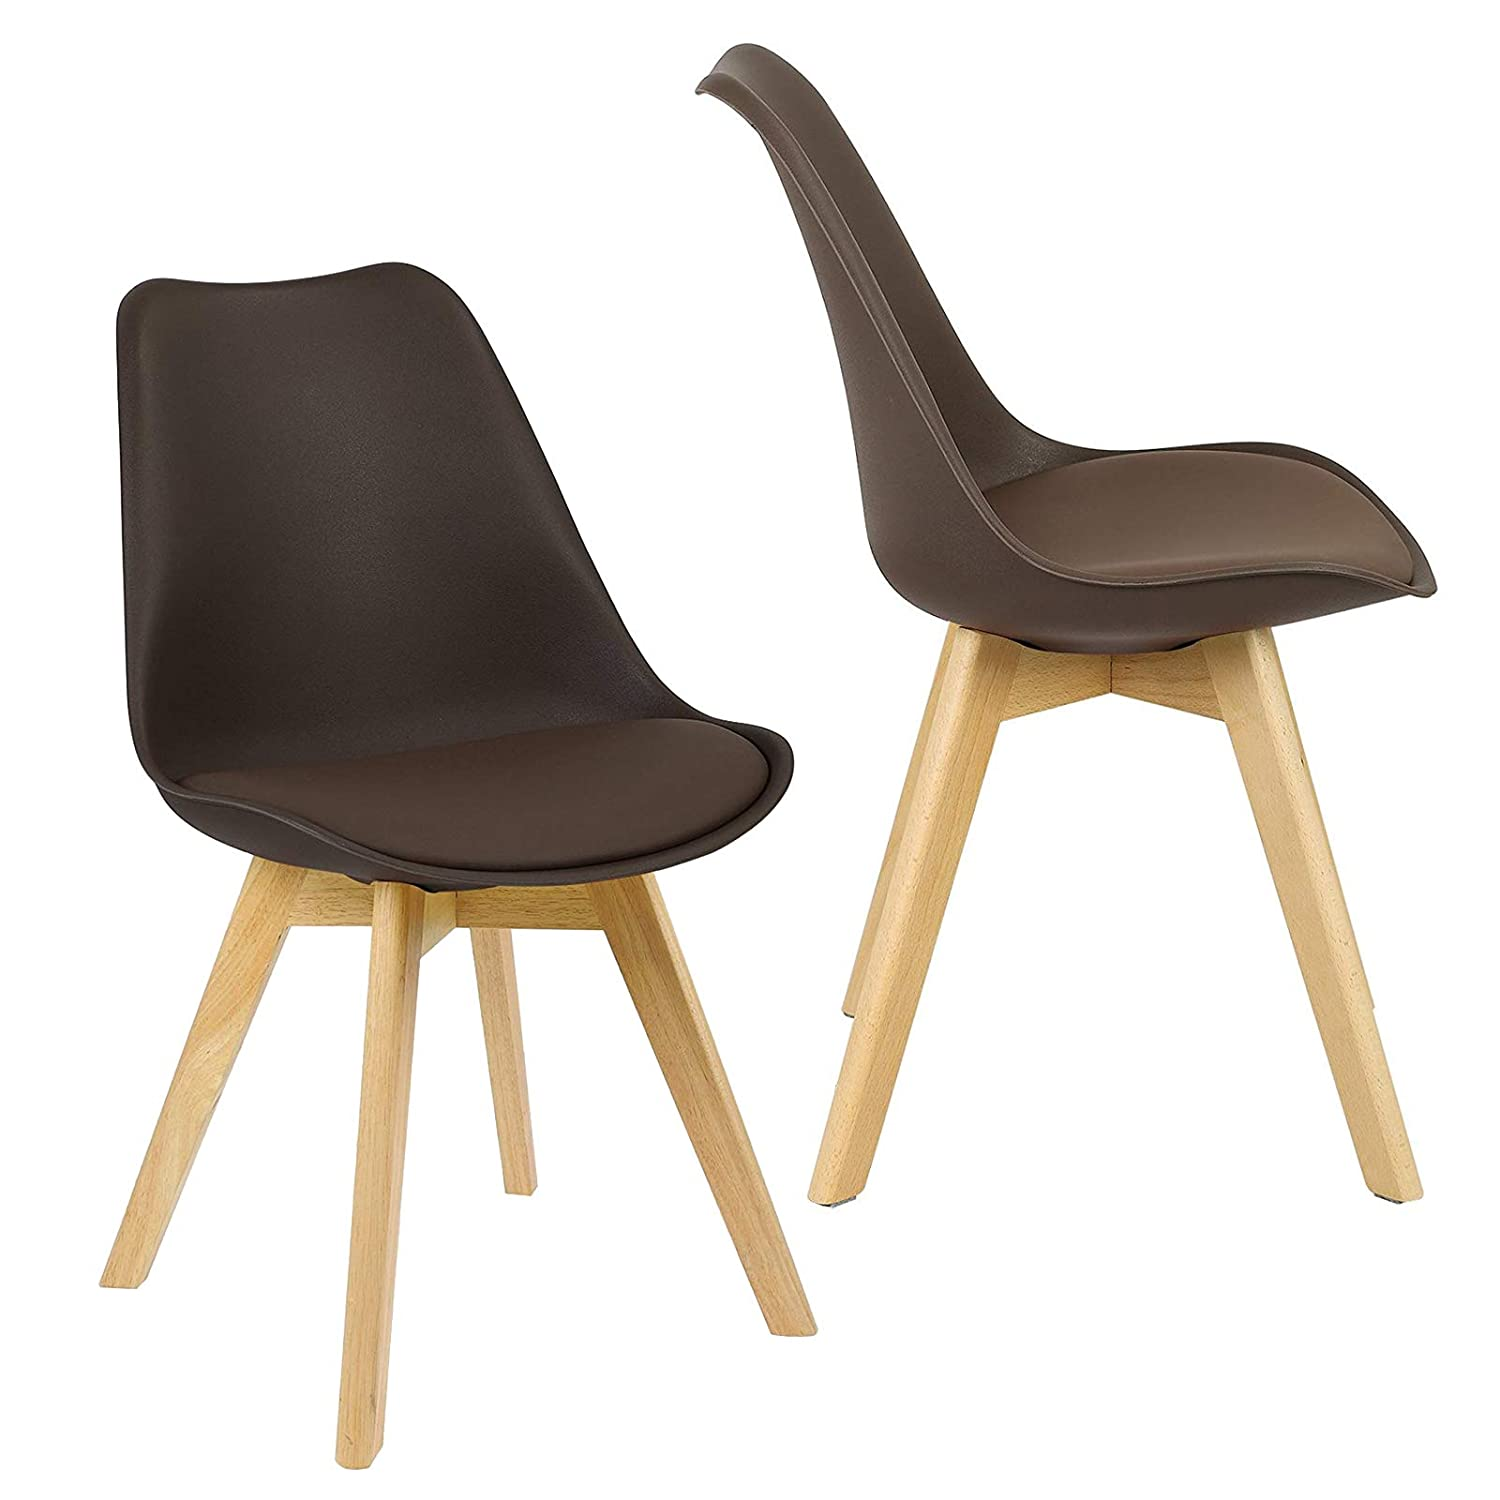 RFIVER Set of 2 Vintage Kitchen Dining Chairs with Antique Brown PU Leather Seat and Black Sturdy Metal Base for Dining Room Living Room Bedroom Lounge BS1003